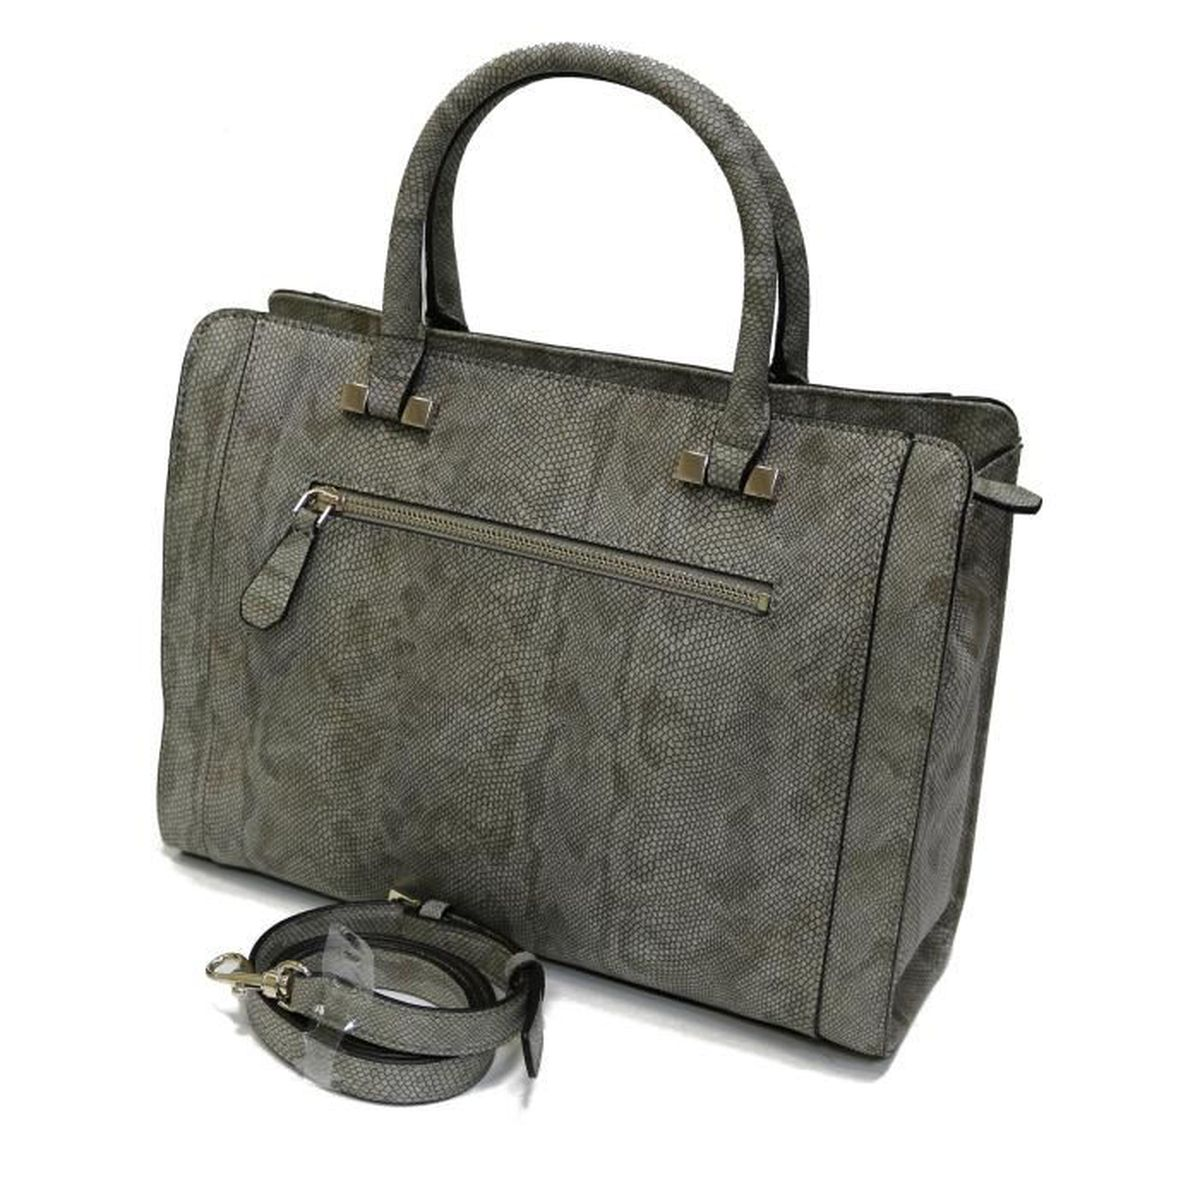 Vente Cabas Achat Kingsley Python Taupe Guess Sac 8ywnPN0vmO